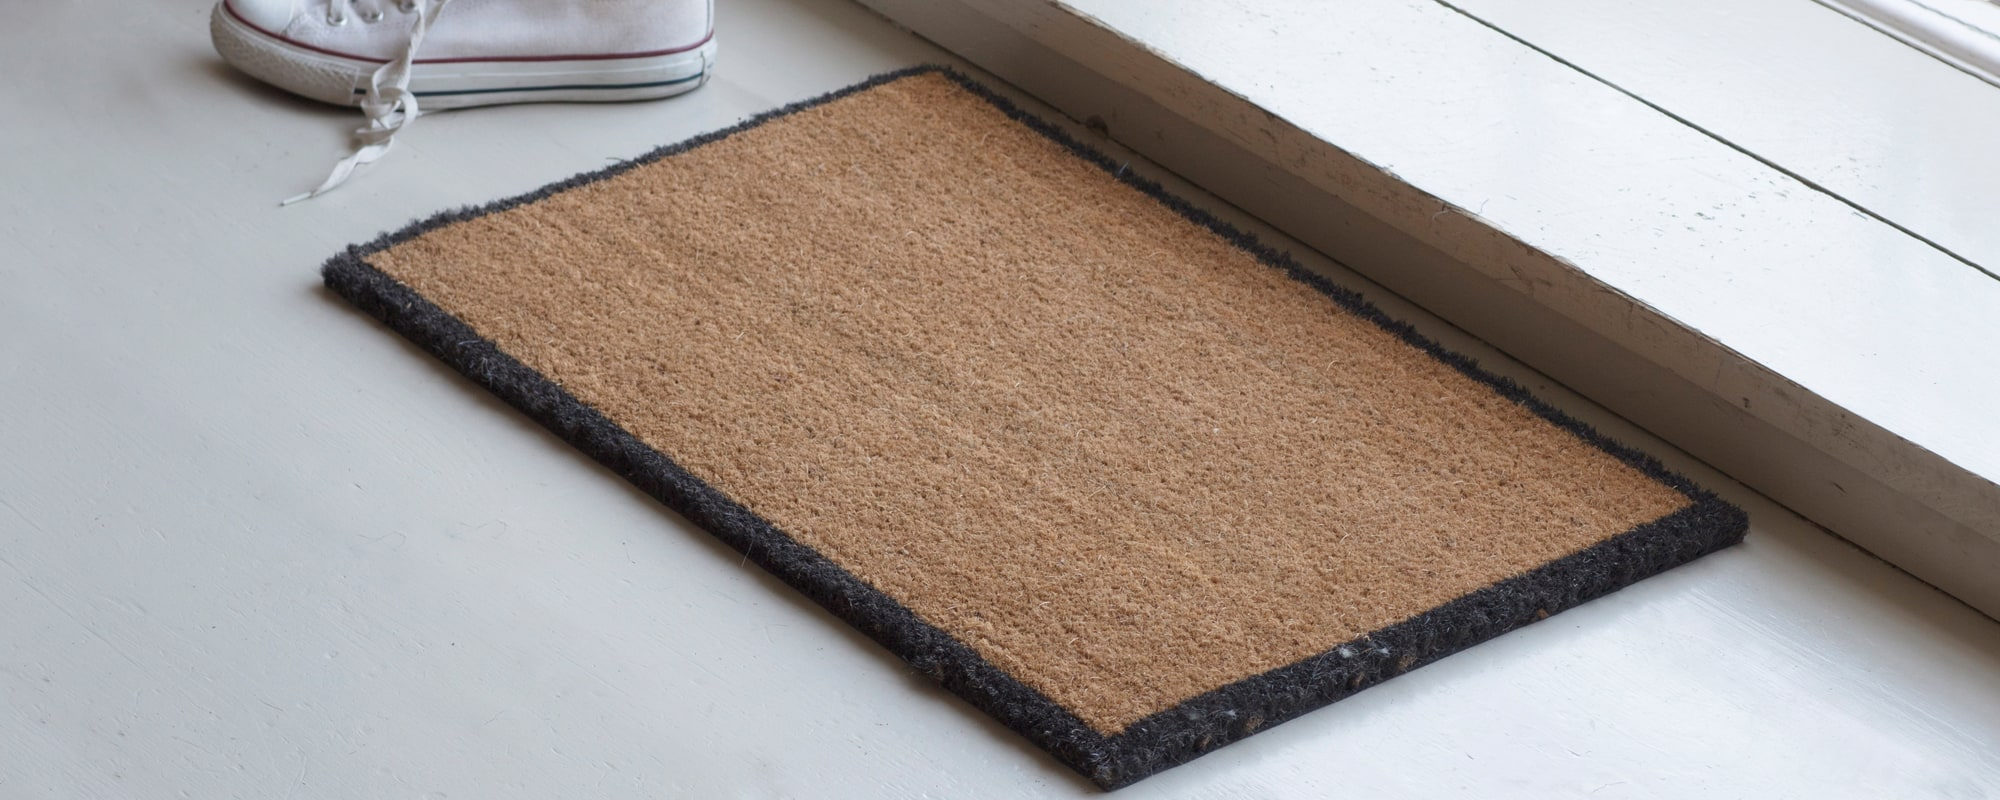 FREE Small Border Doormat when you spend over £100